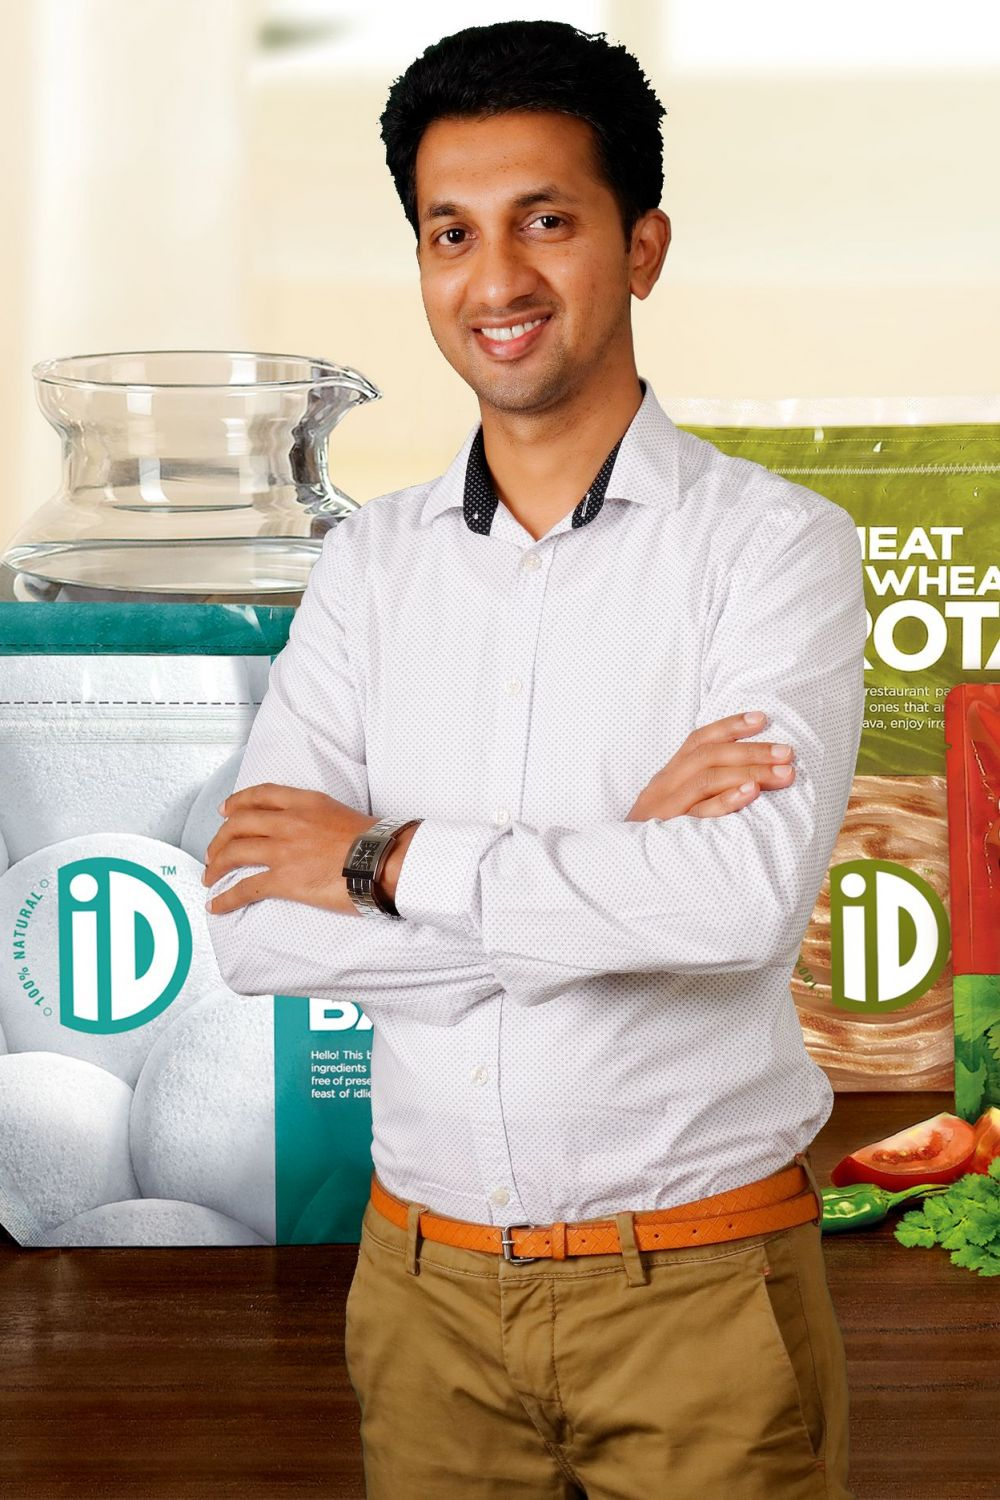 The Fresh FMCG Seller (PC Musthafa, CEO and Co-founder   iD Fresh Food)